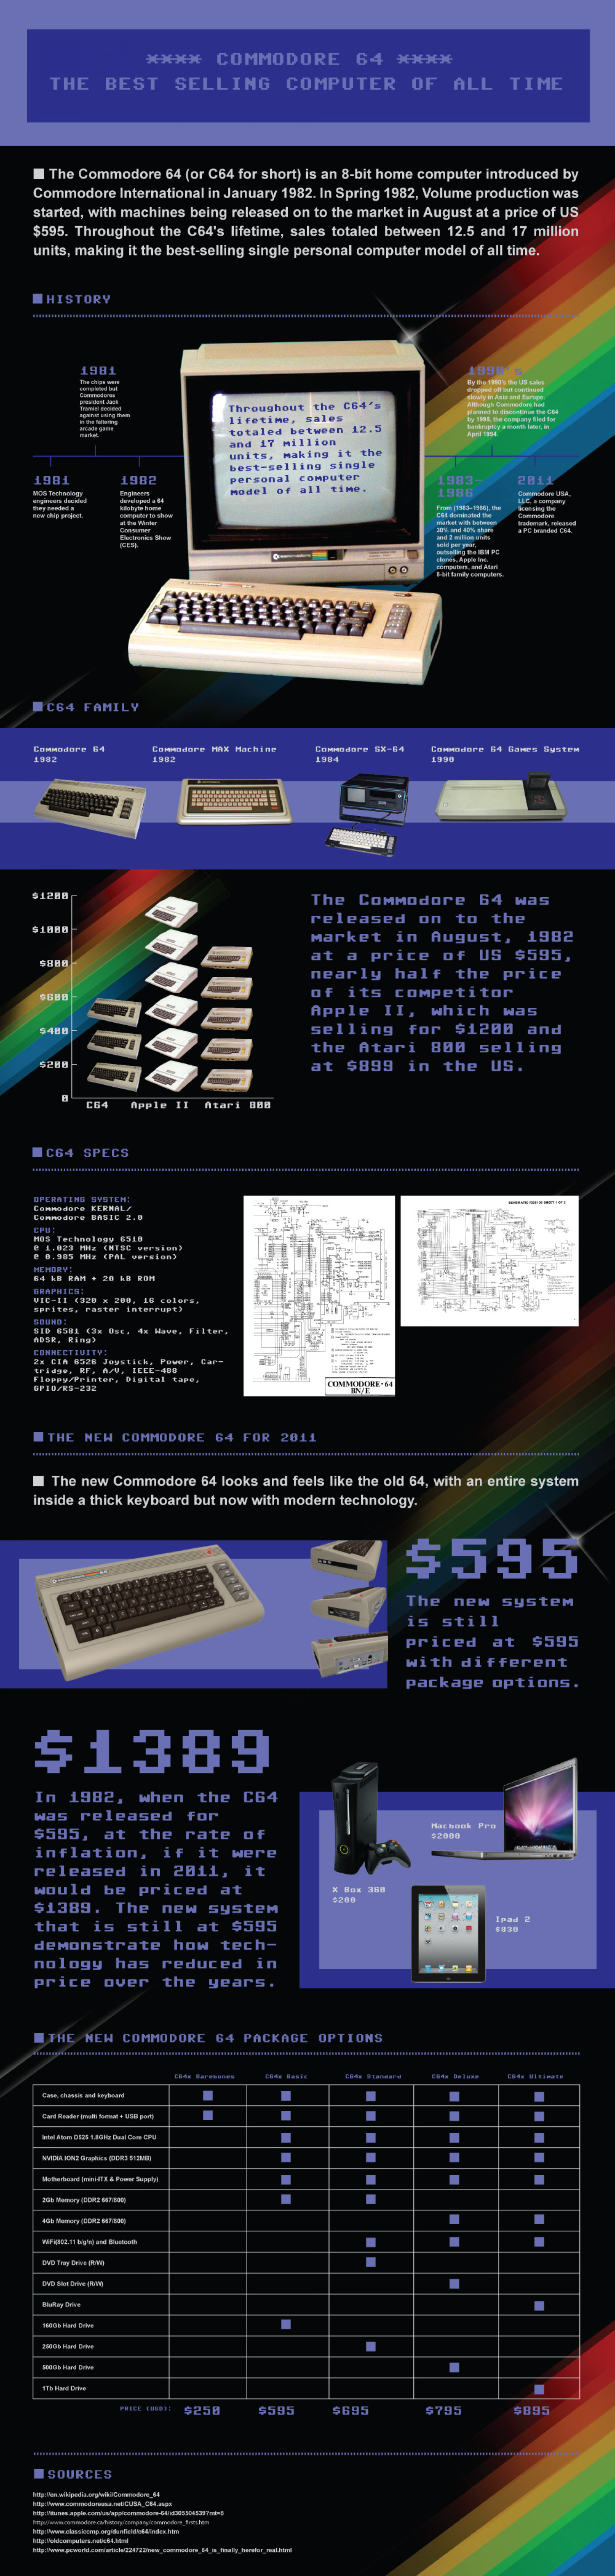 The Best Selling Computer of All Time Infographic